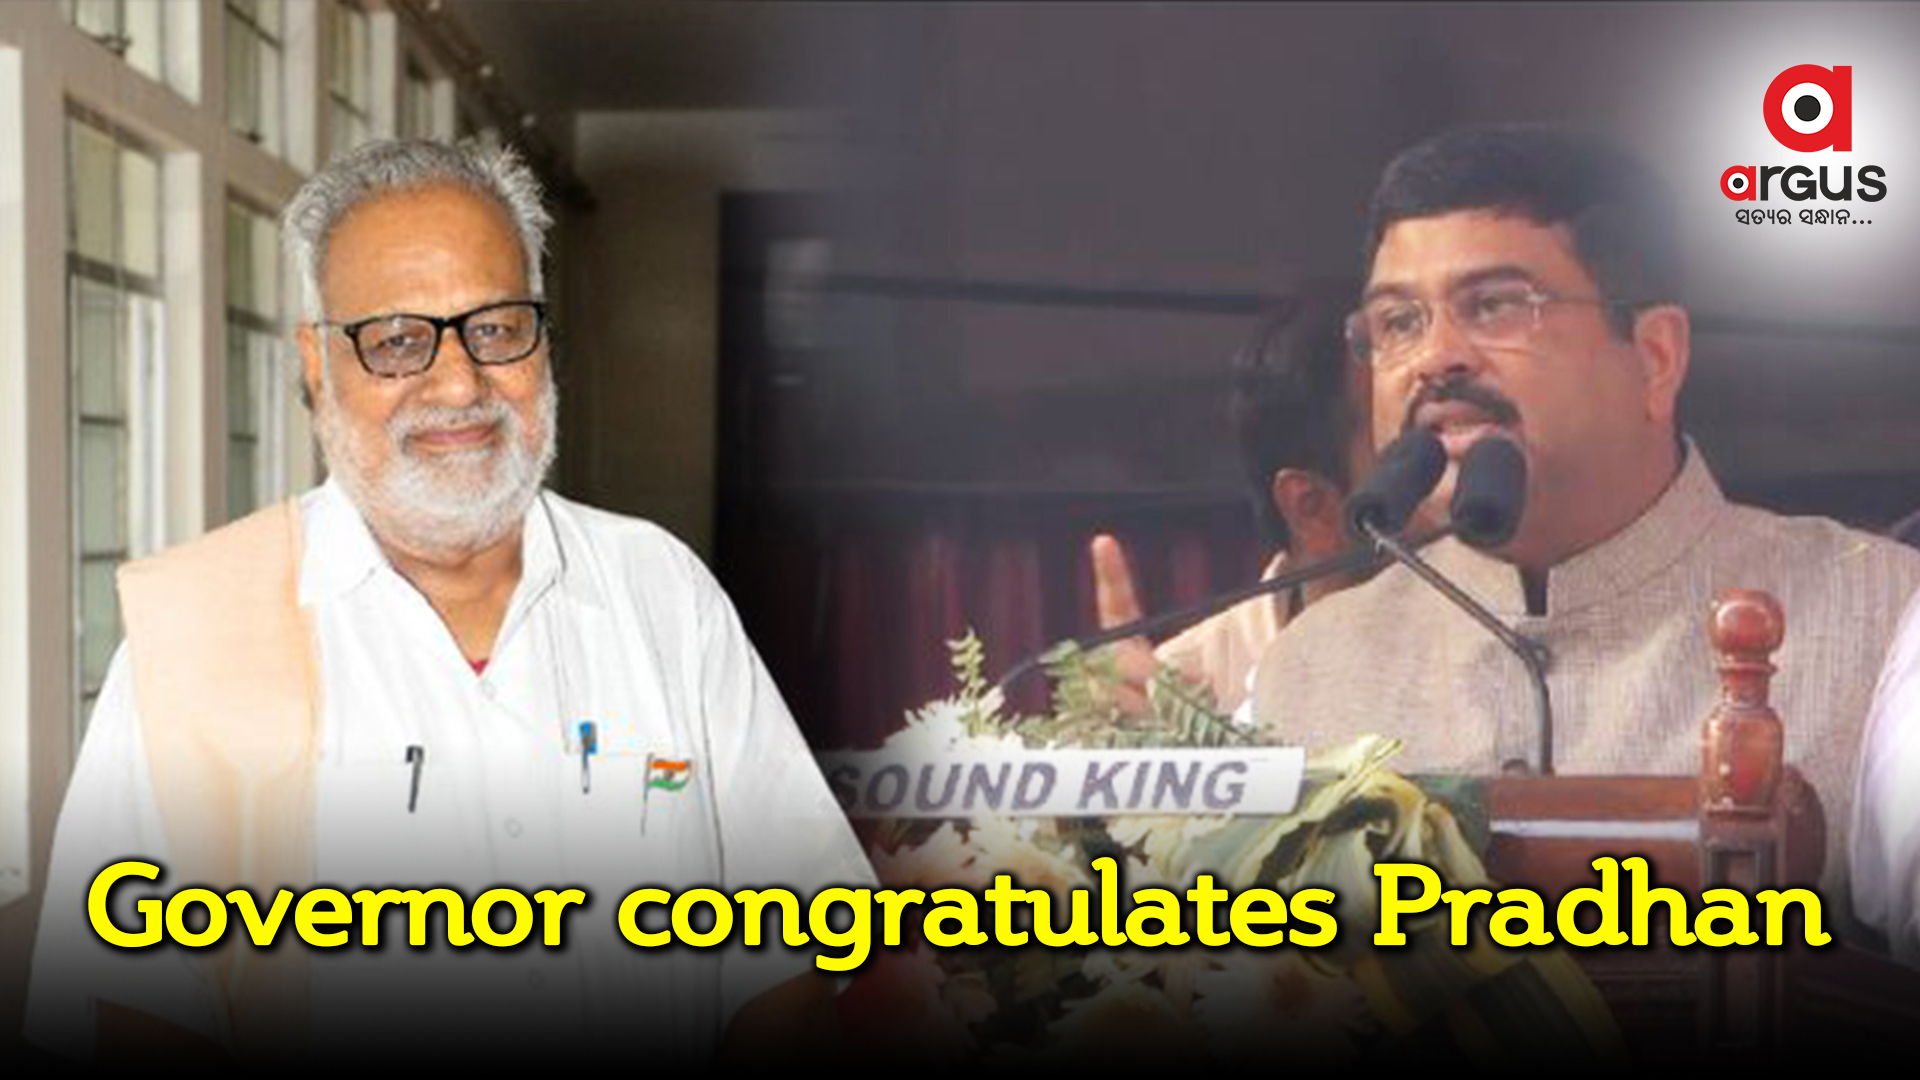 Governor congratulates Pradhan for donating 1 yr's salary to Utkal University